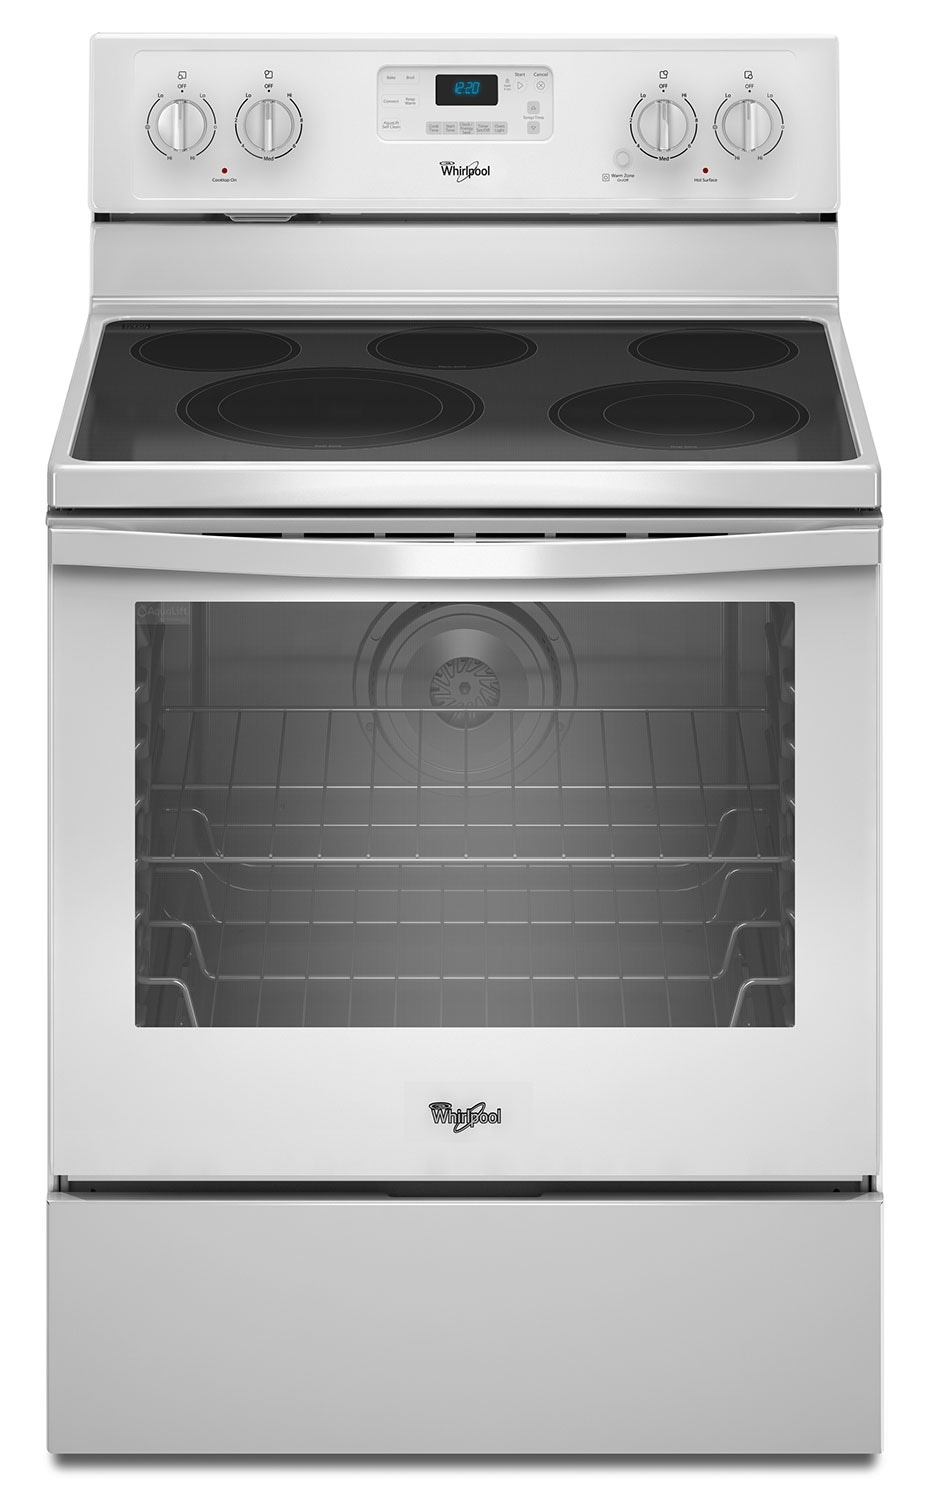 [Whirlpool Stainless Steel Freestanding Electric Convection Range (6.4 Cu. Ft.) - YWFE540H0EW]